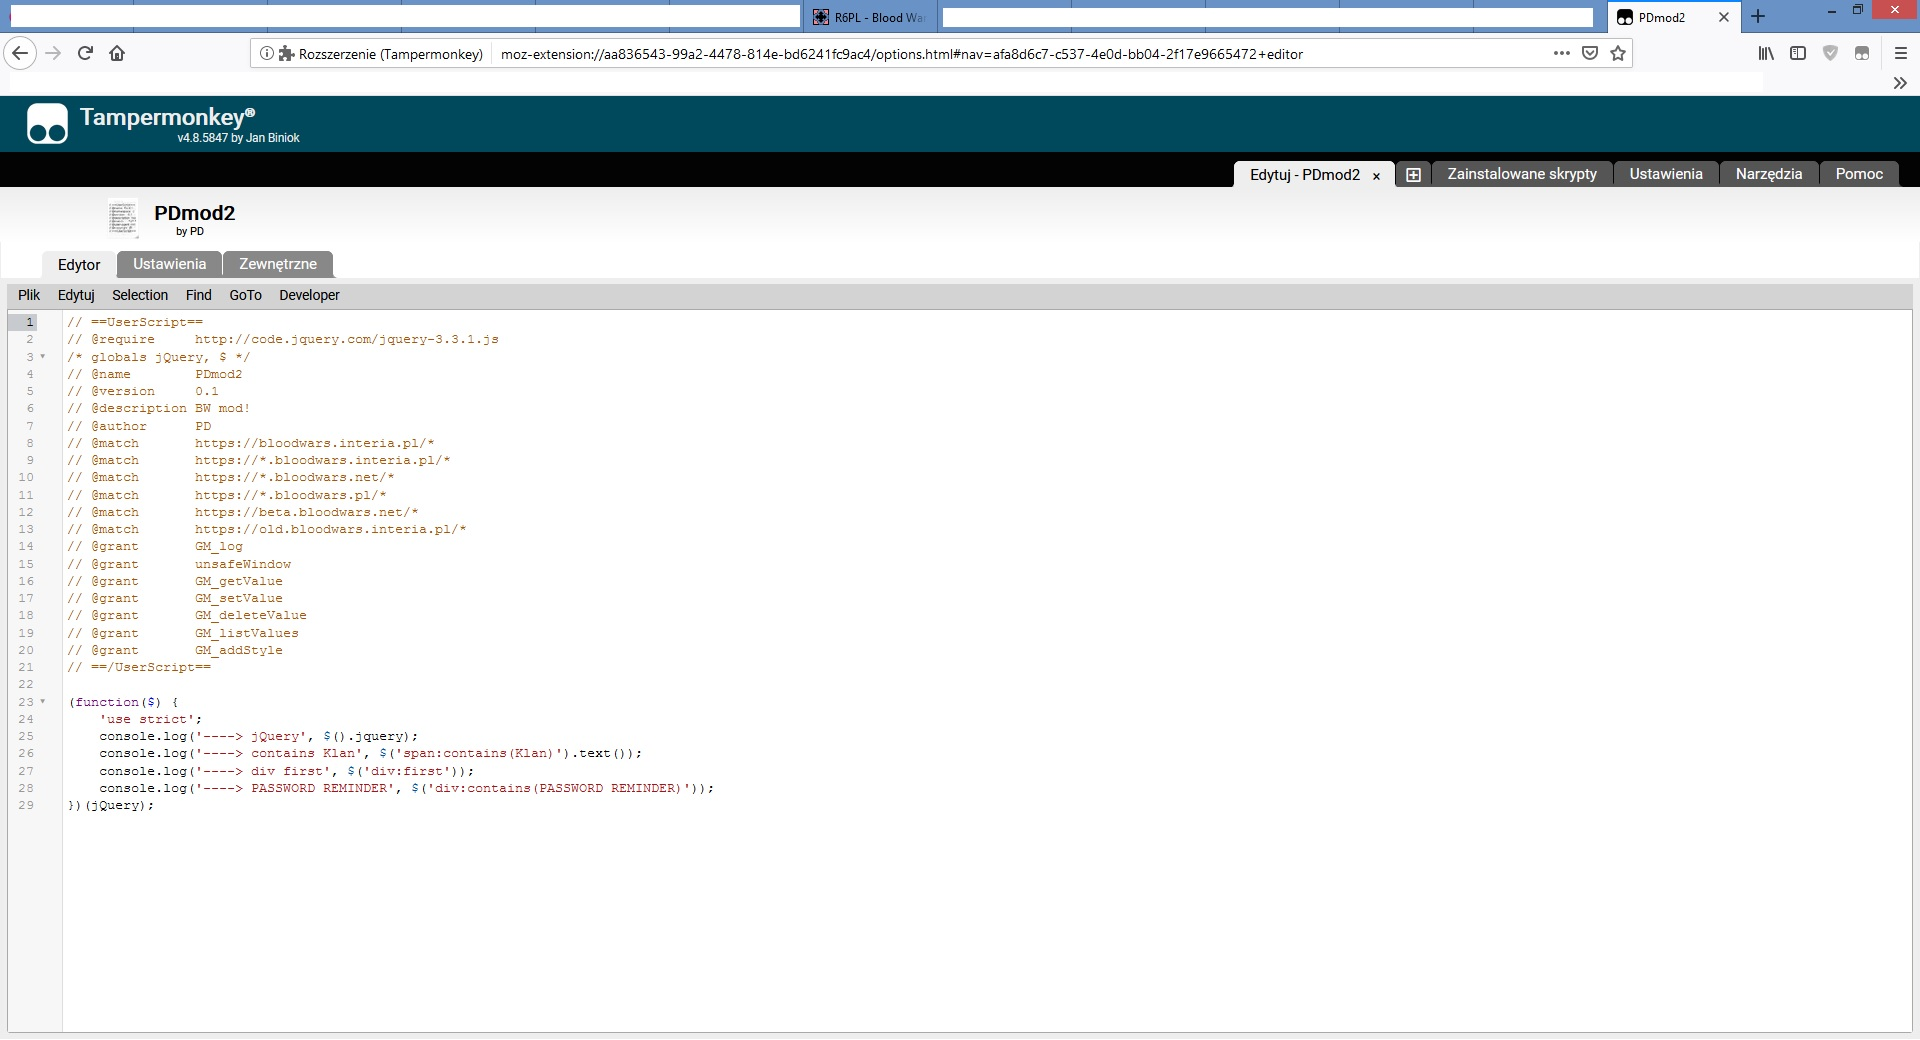 jQuery works on GM (Firefox) but not TM (Firefox/Slimjet